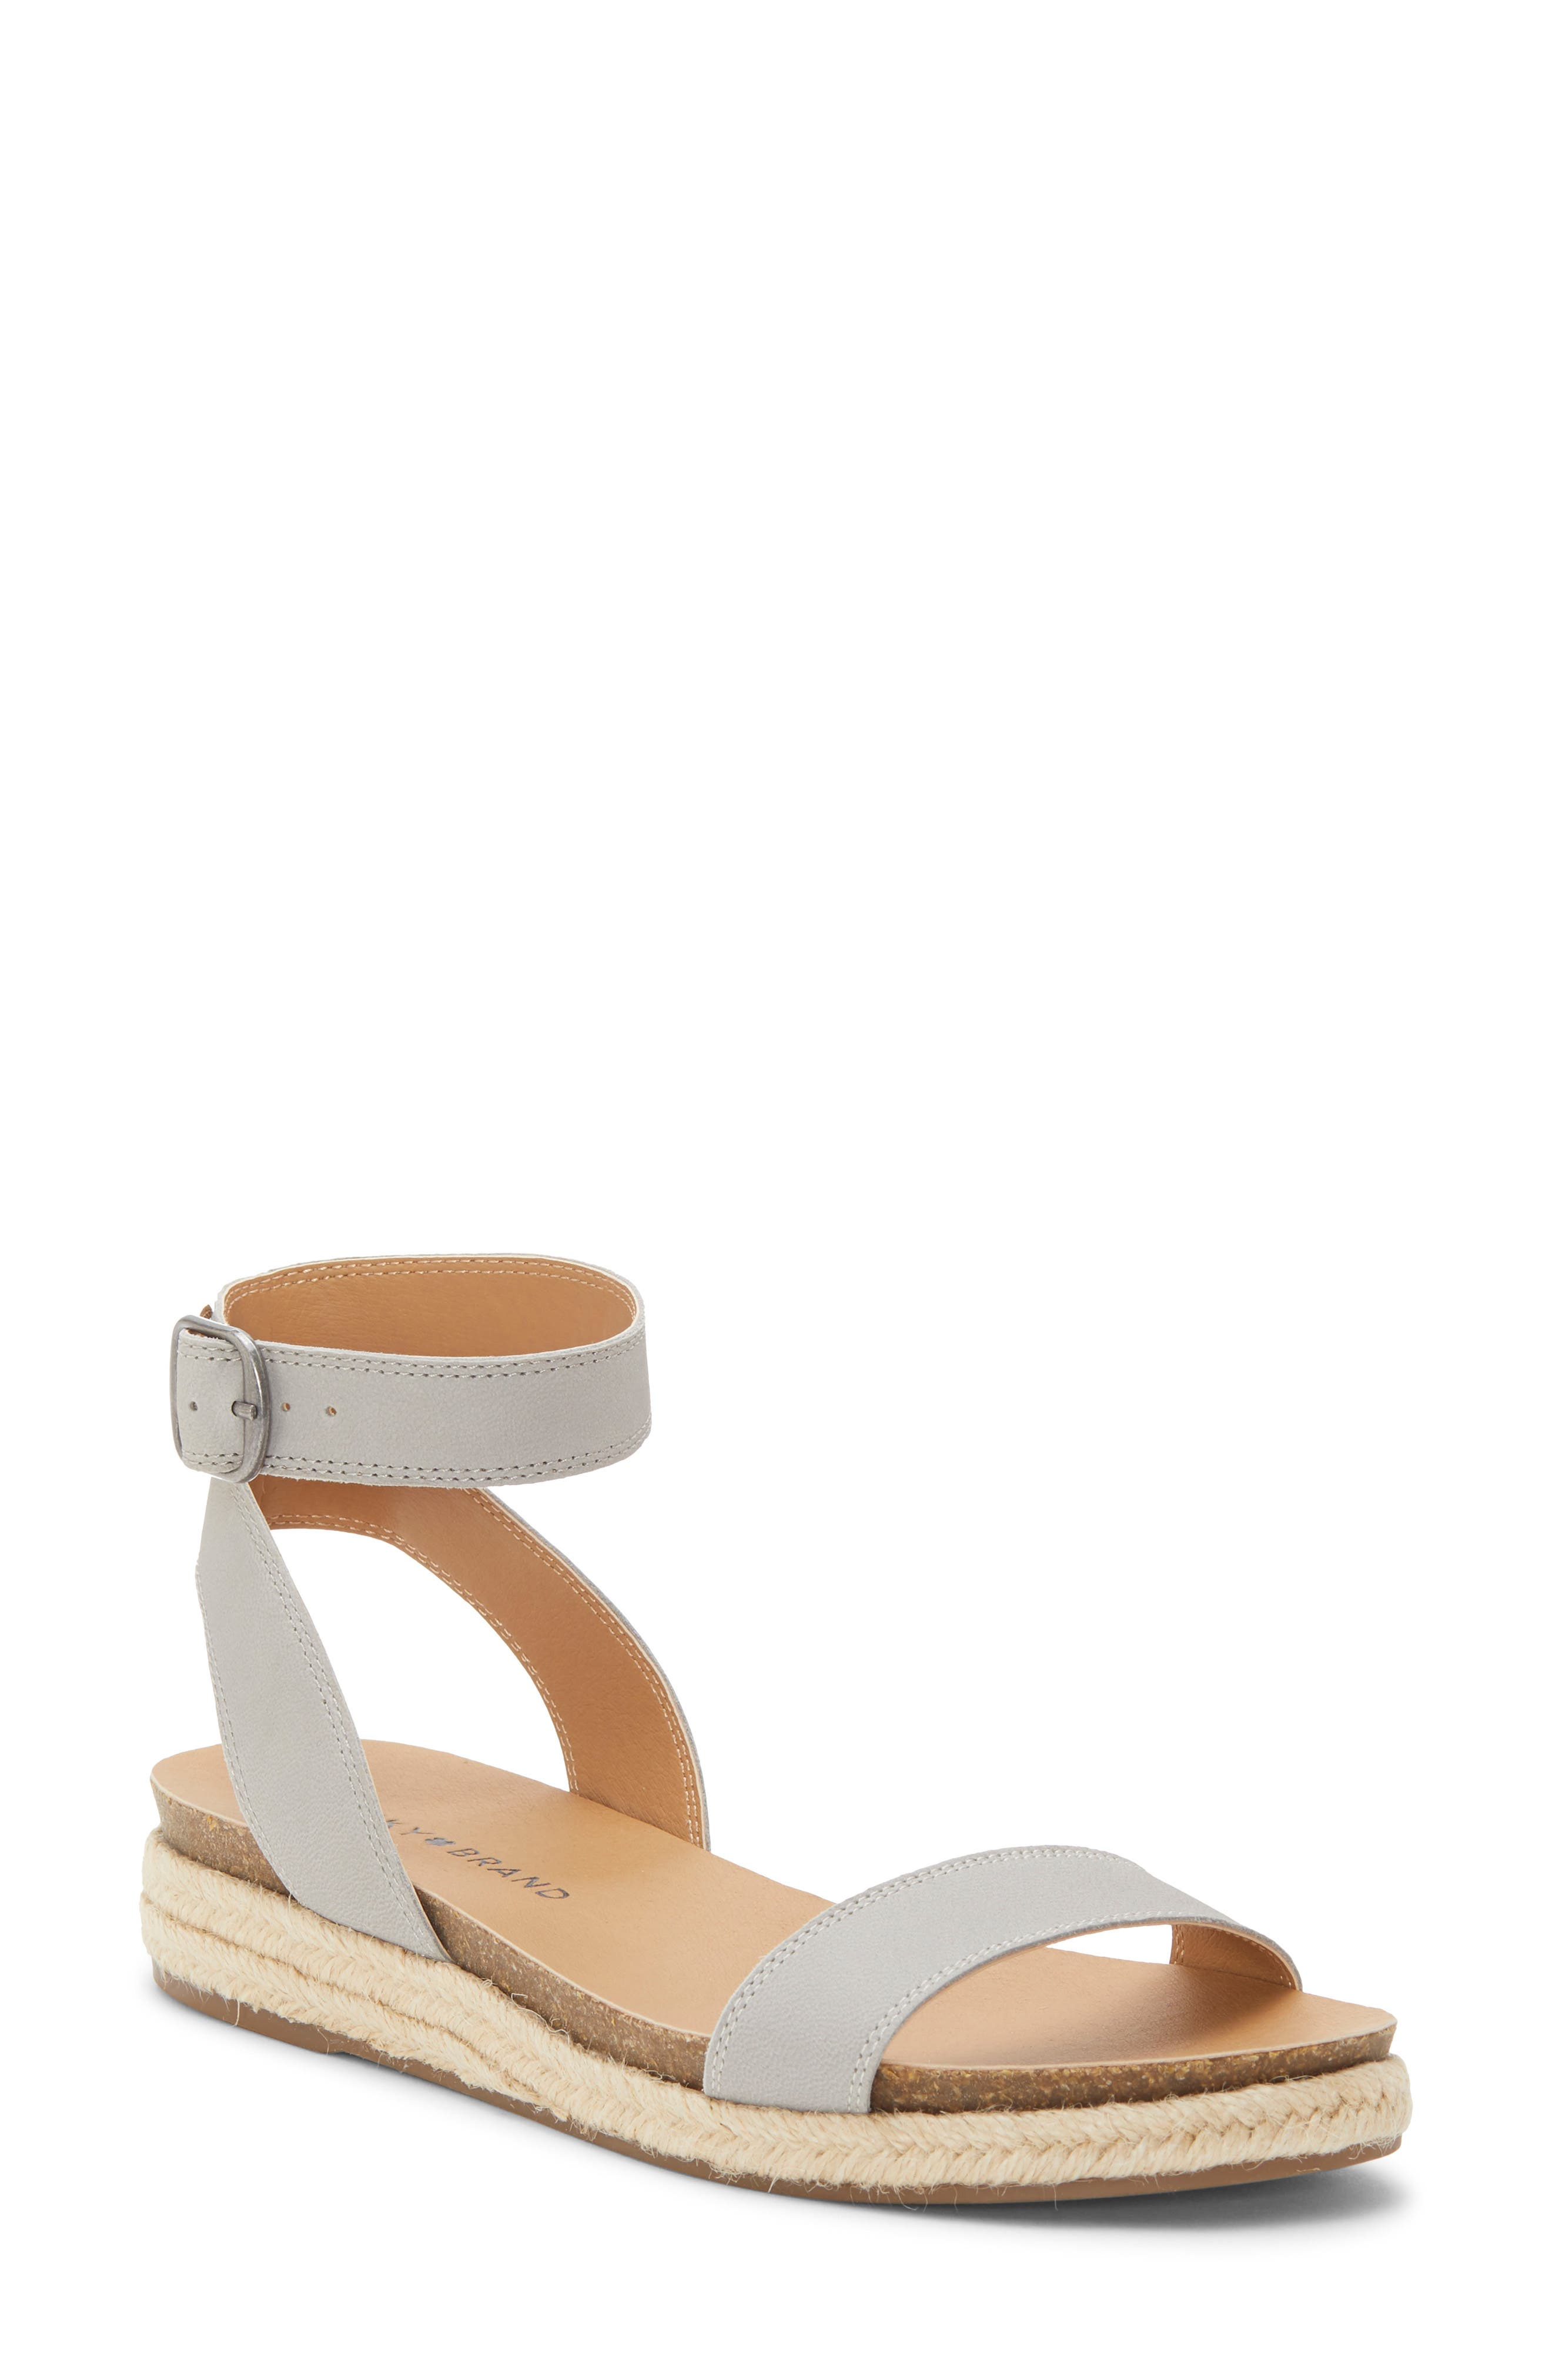 LUCKY BRAND, Garston Espadrille Sandal, Main thumbnail 1, color, CHINCHILLA LEATHER